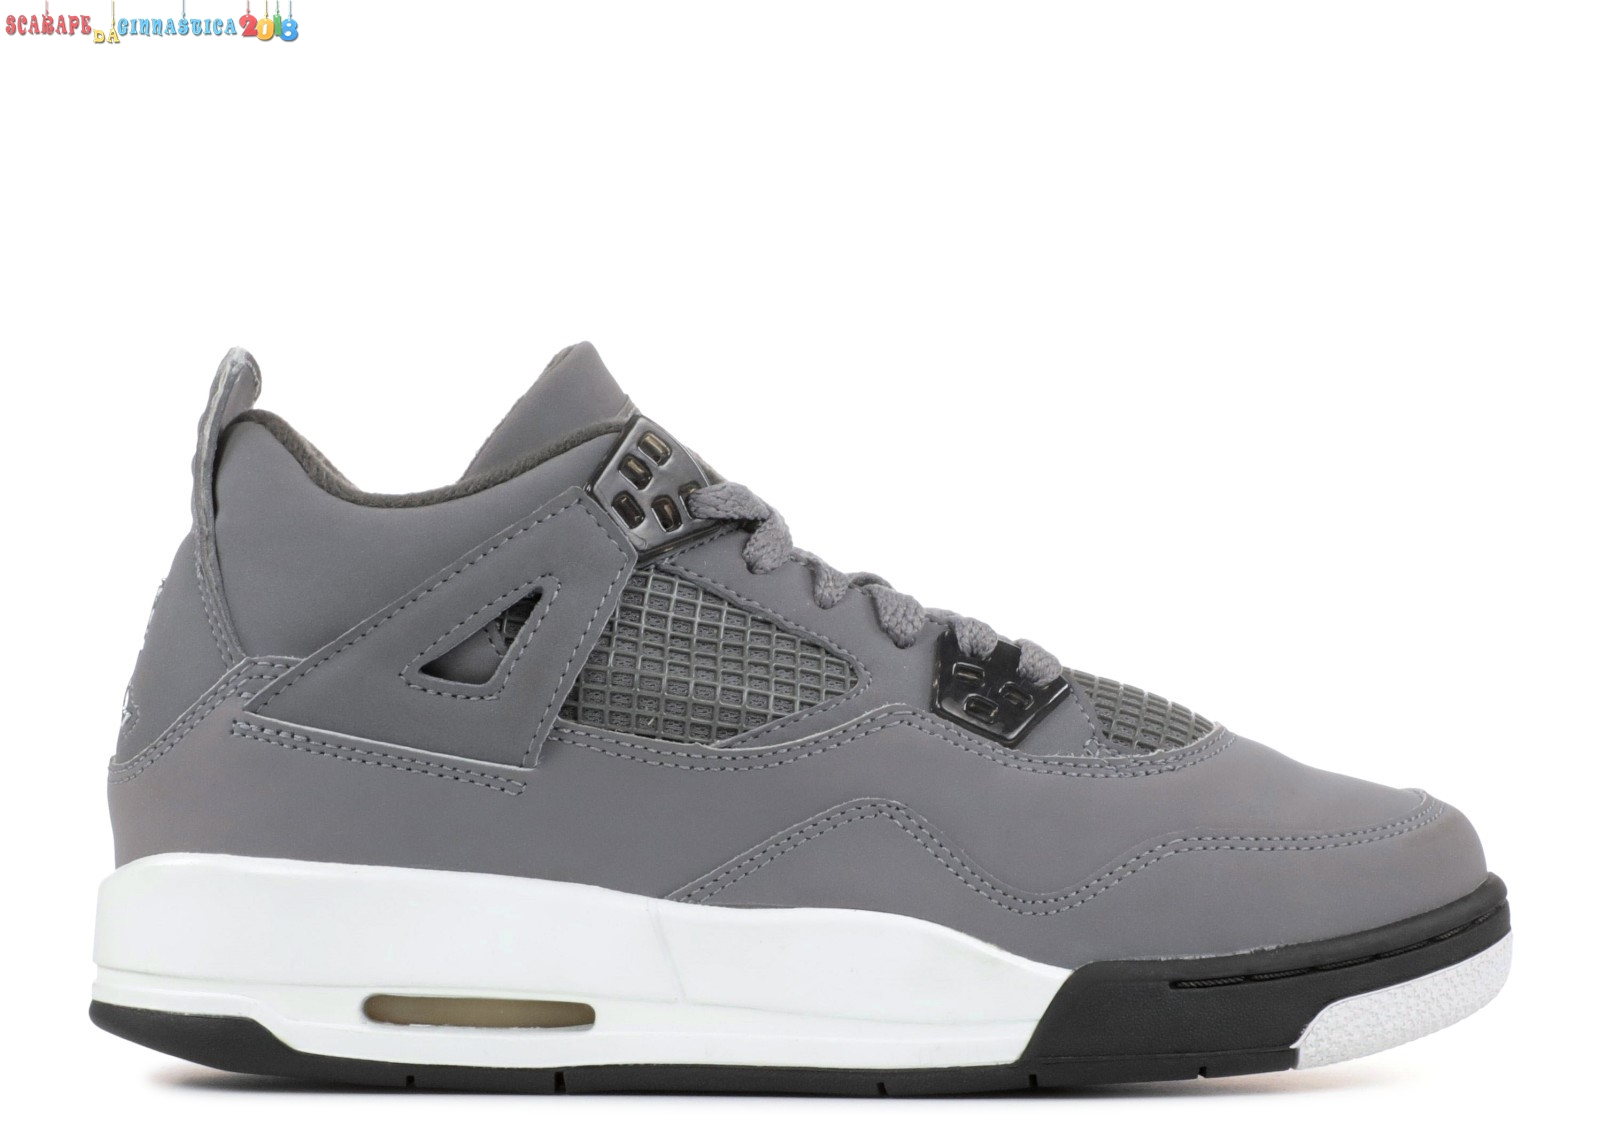 Replica Air Jordan 4 Retro (Gs) Gris (308498-001) - SCARPE BASKET